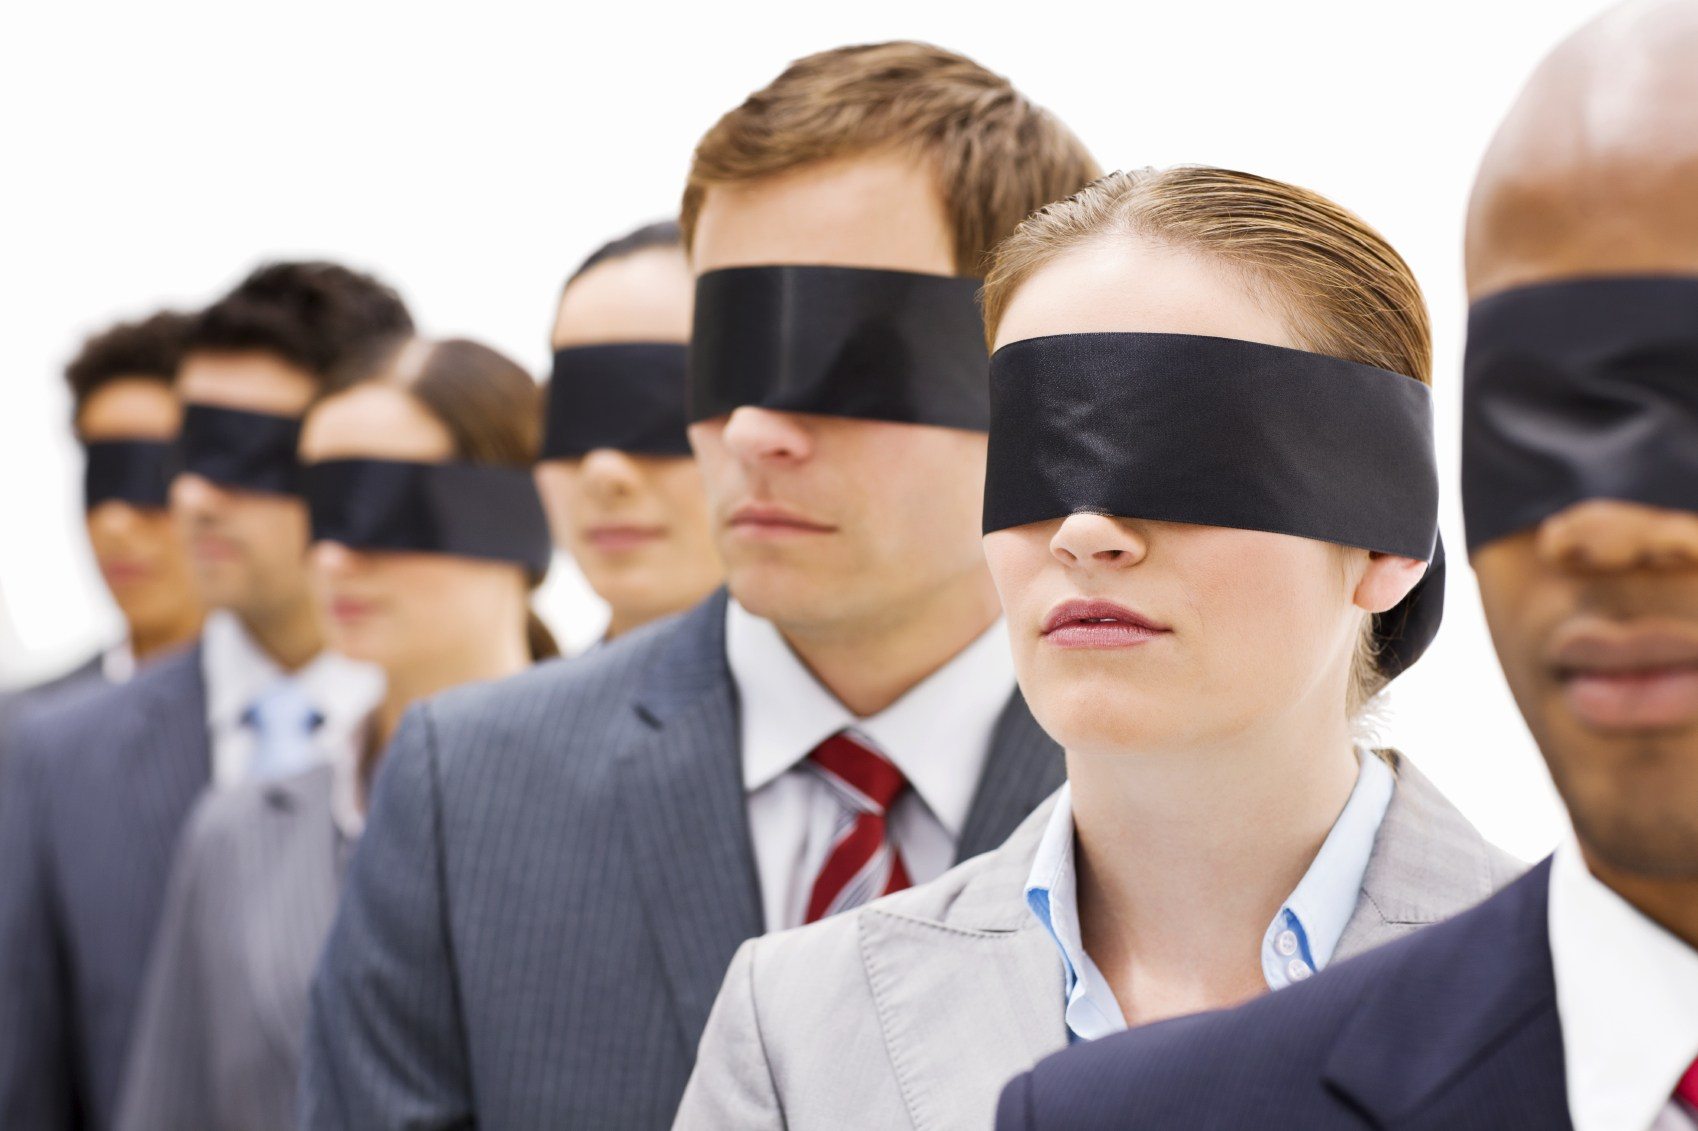 Blindfolded-People.jpg